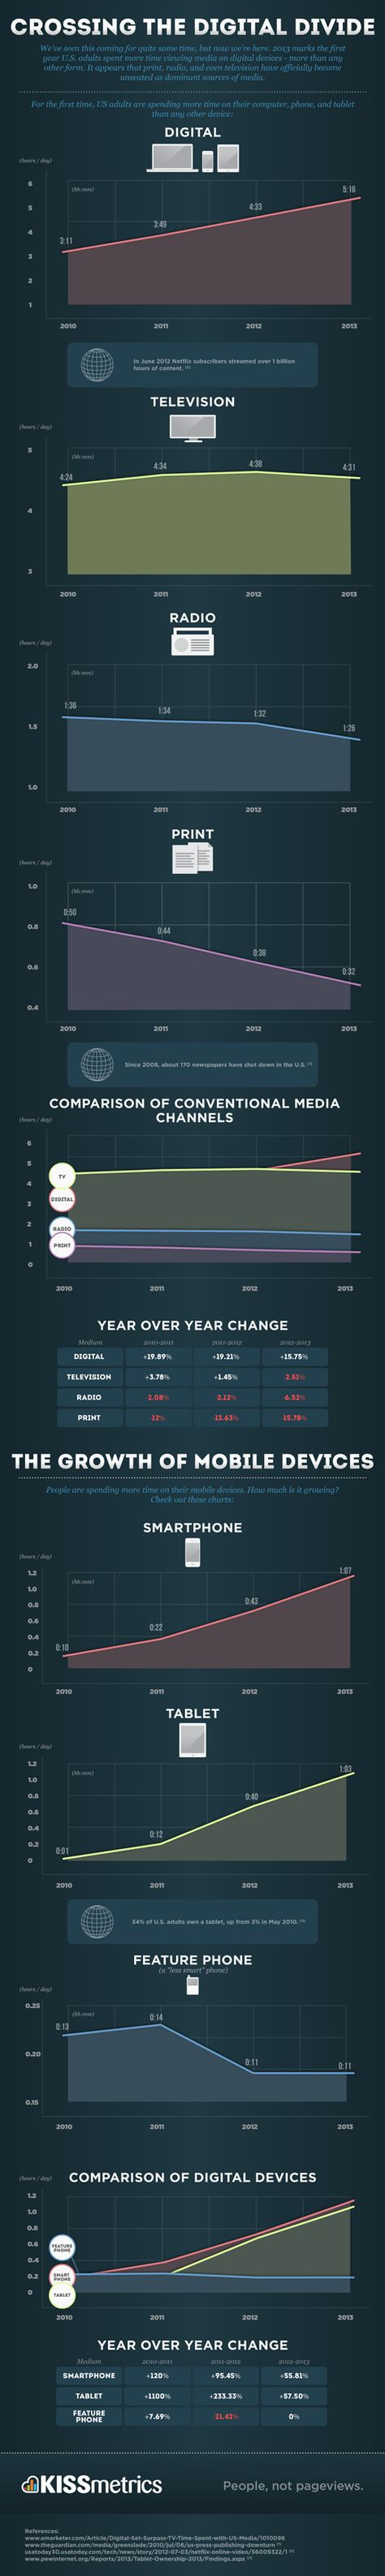 Crossing the Digital Divide - An Infographic on the Changing Forms of Media